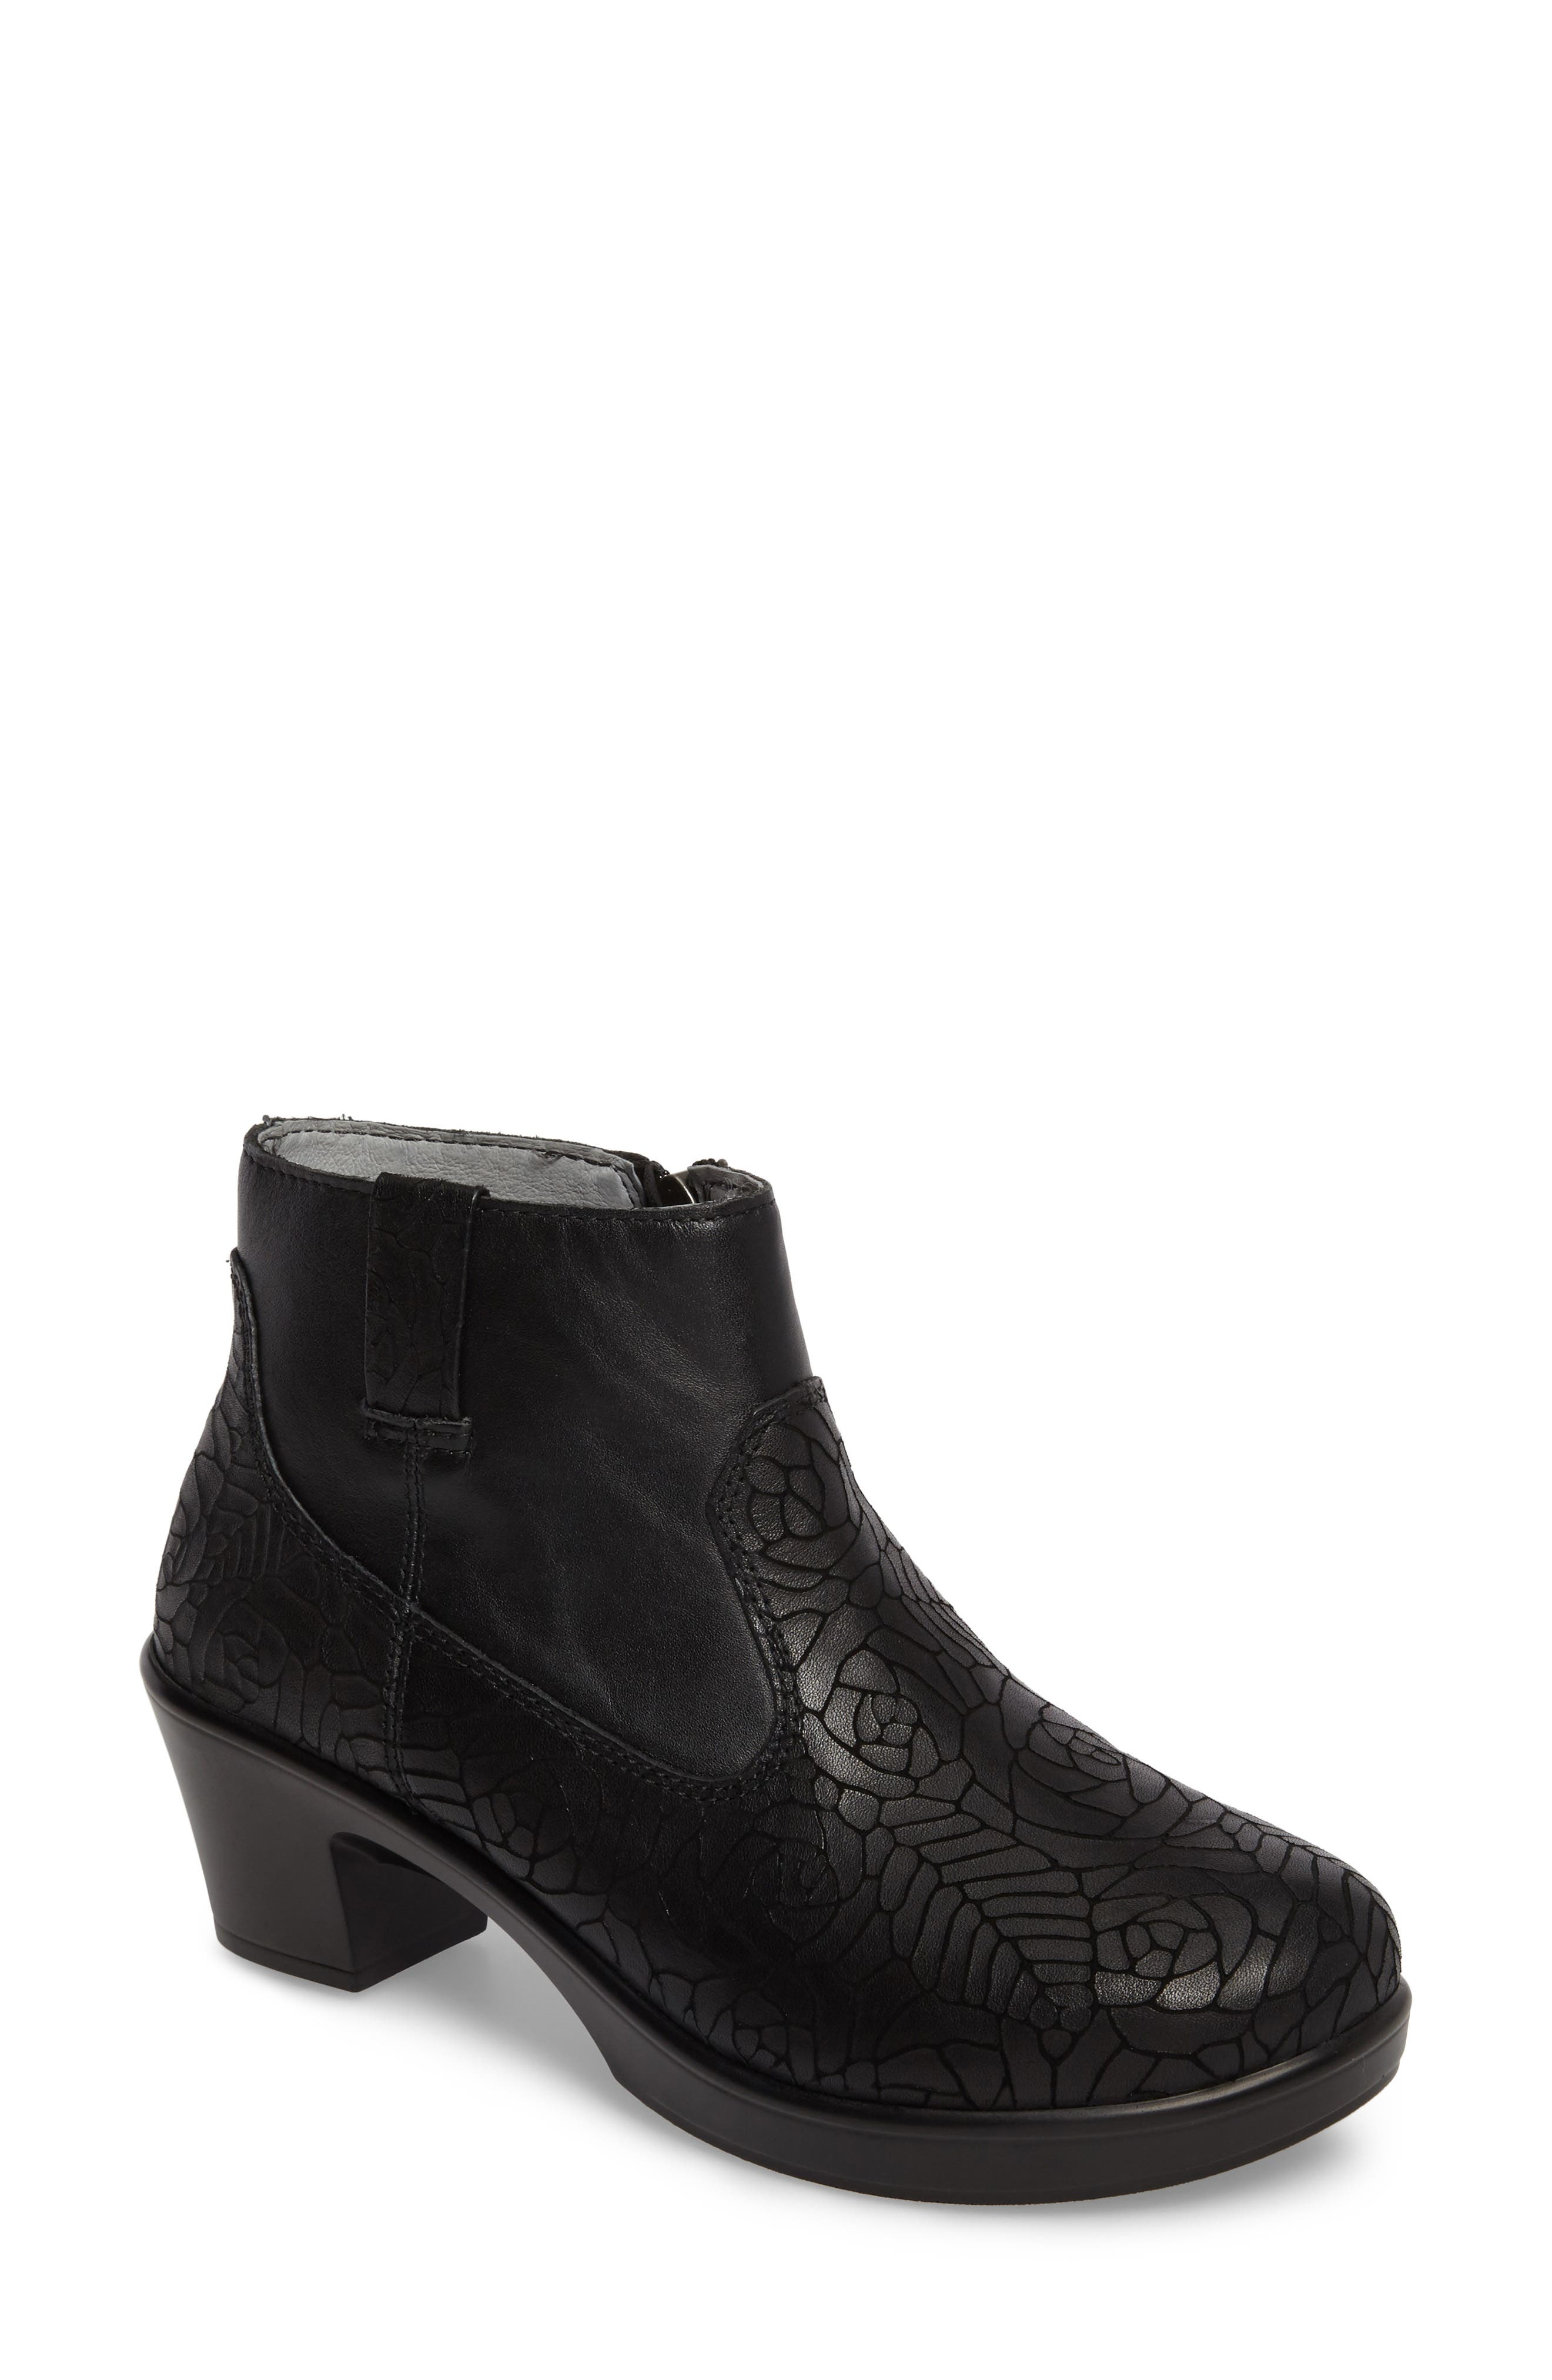 Hayden Bootie,                         Main,                         color, FLORAL NOTES LEATHER